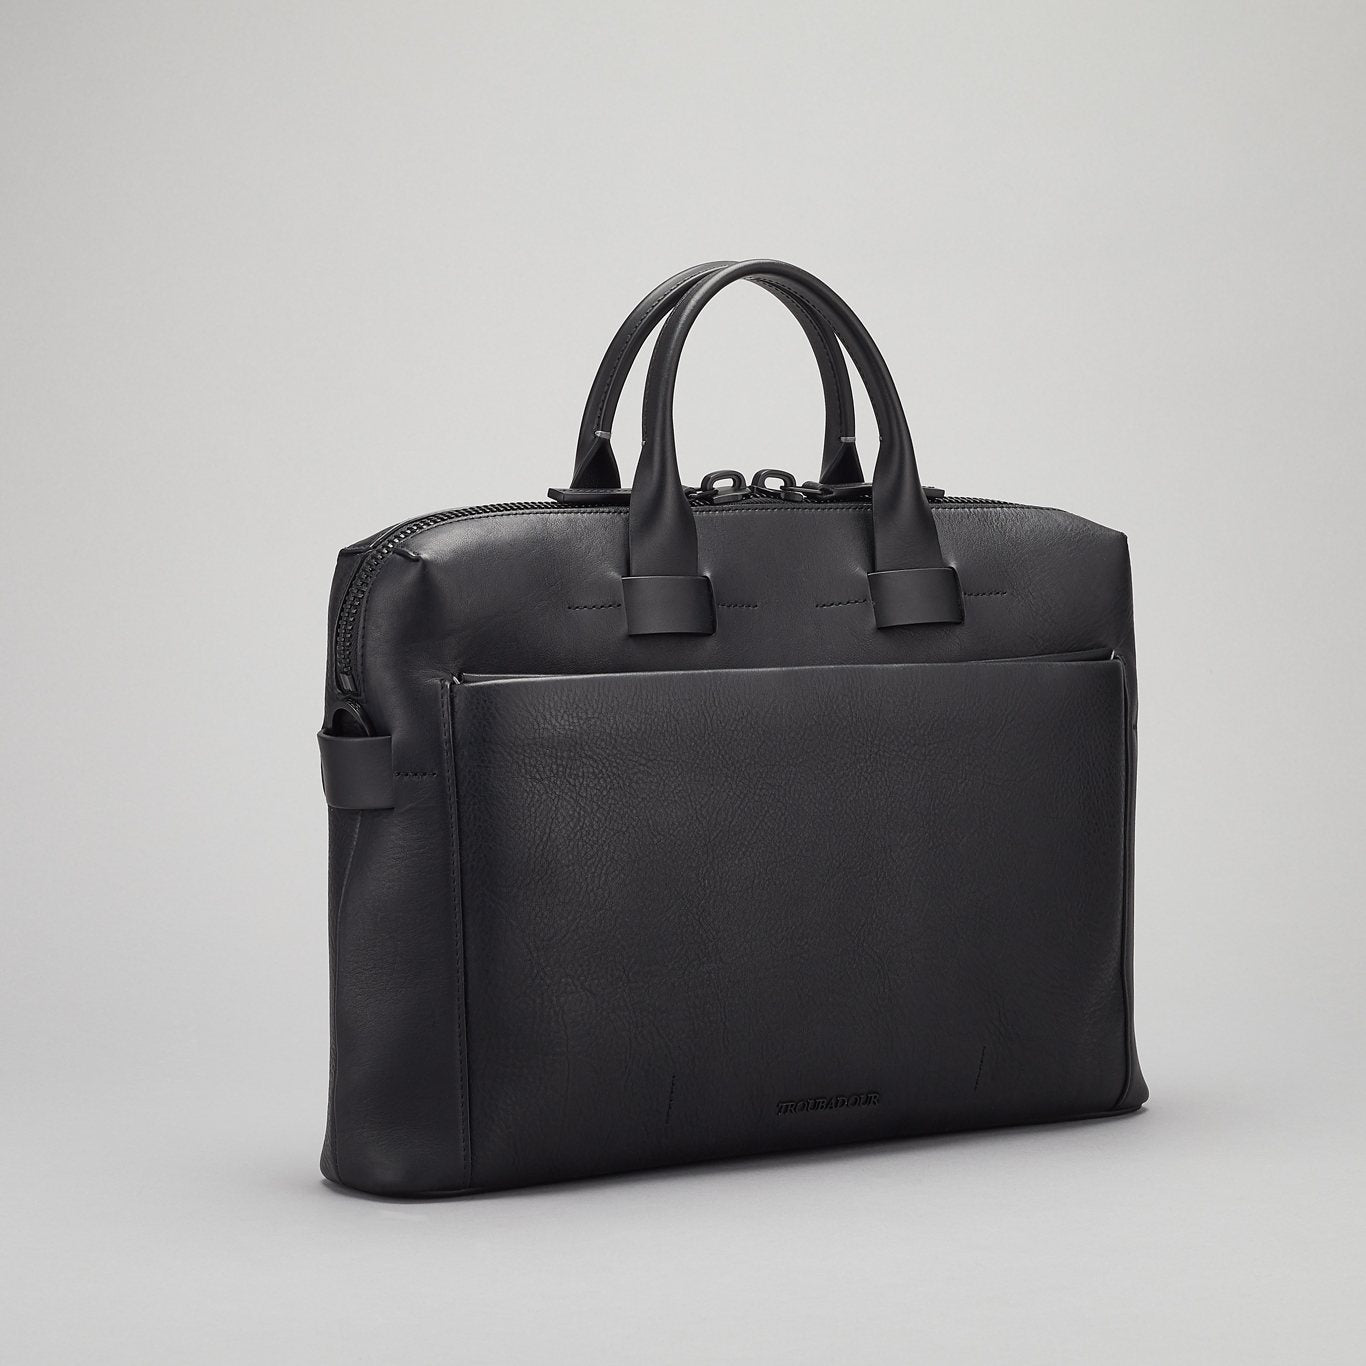 Generation Pathfinder Slim Briefcase made with black leather